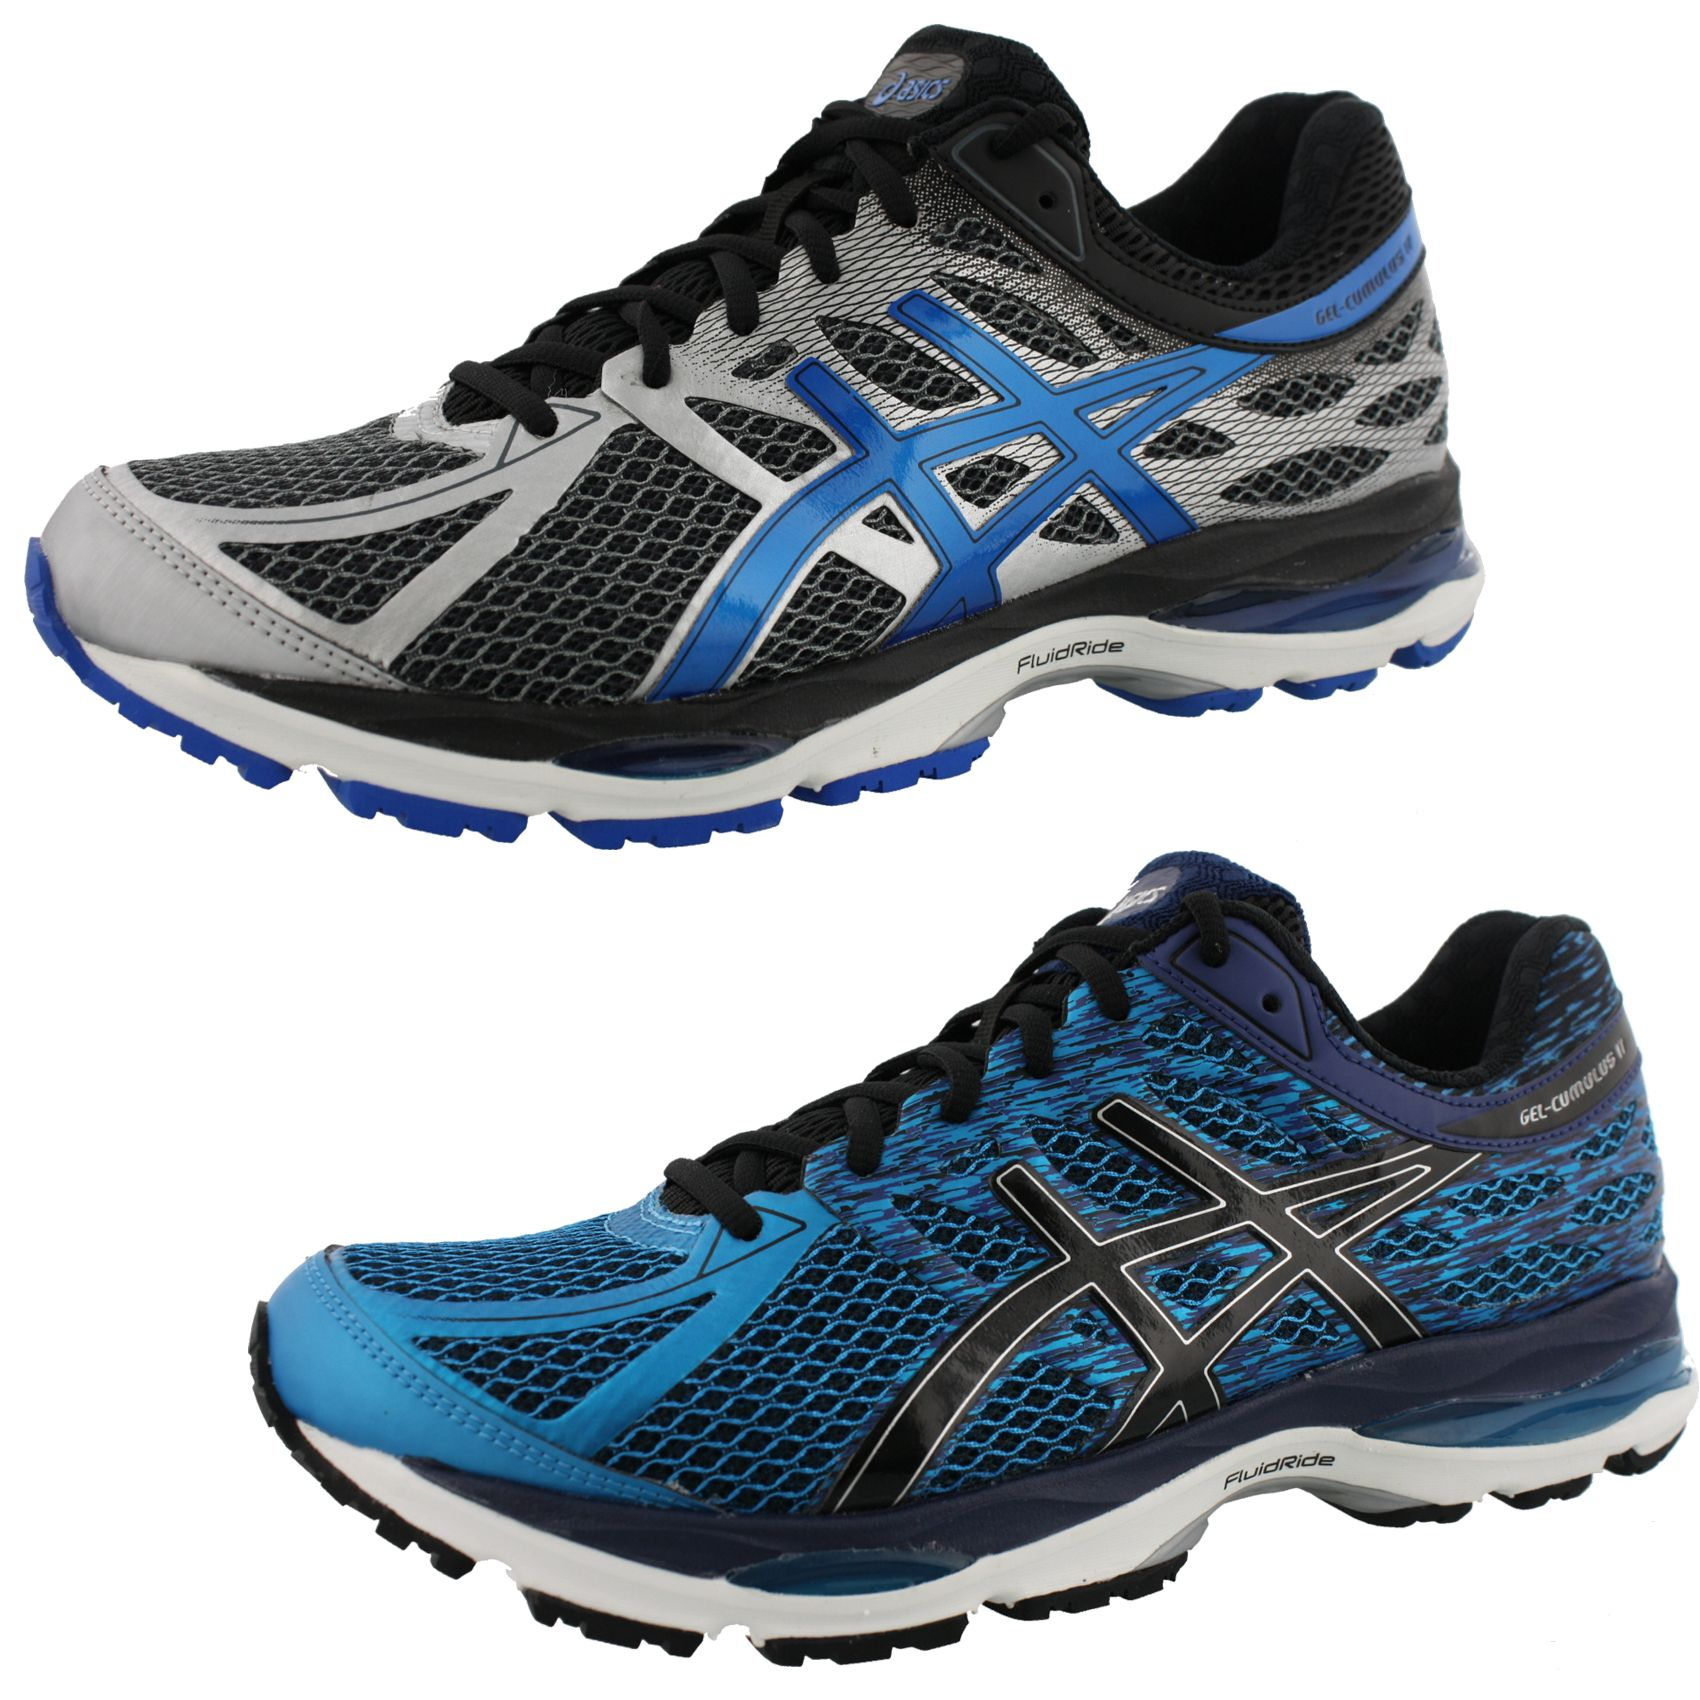 New Cumulus 17 for men, you like buy it at new